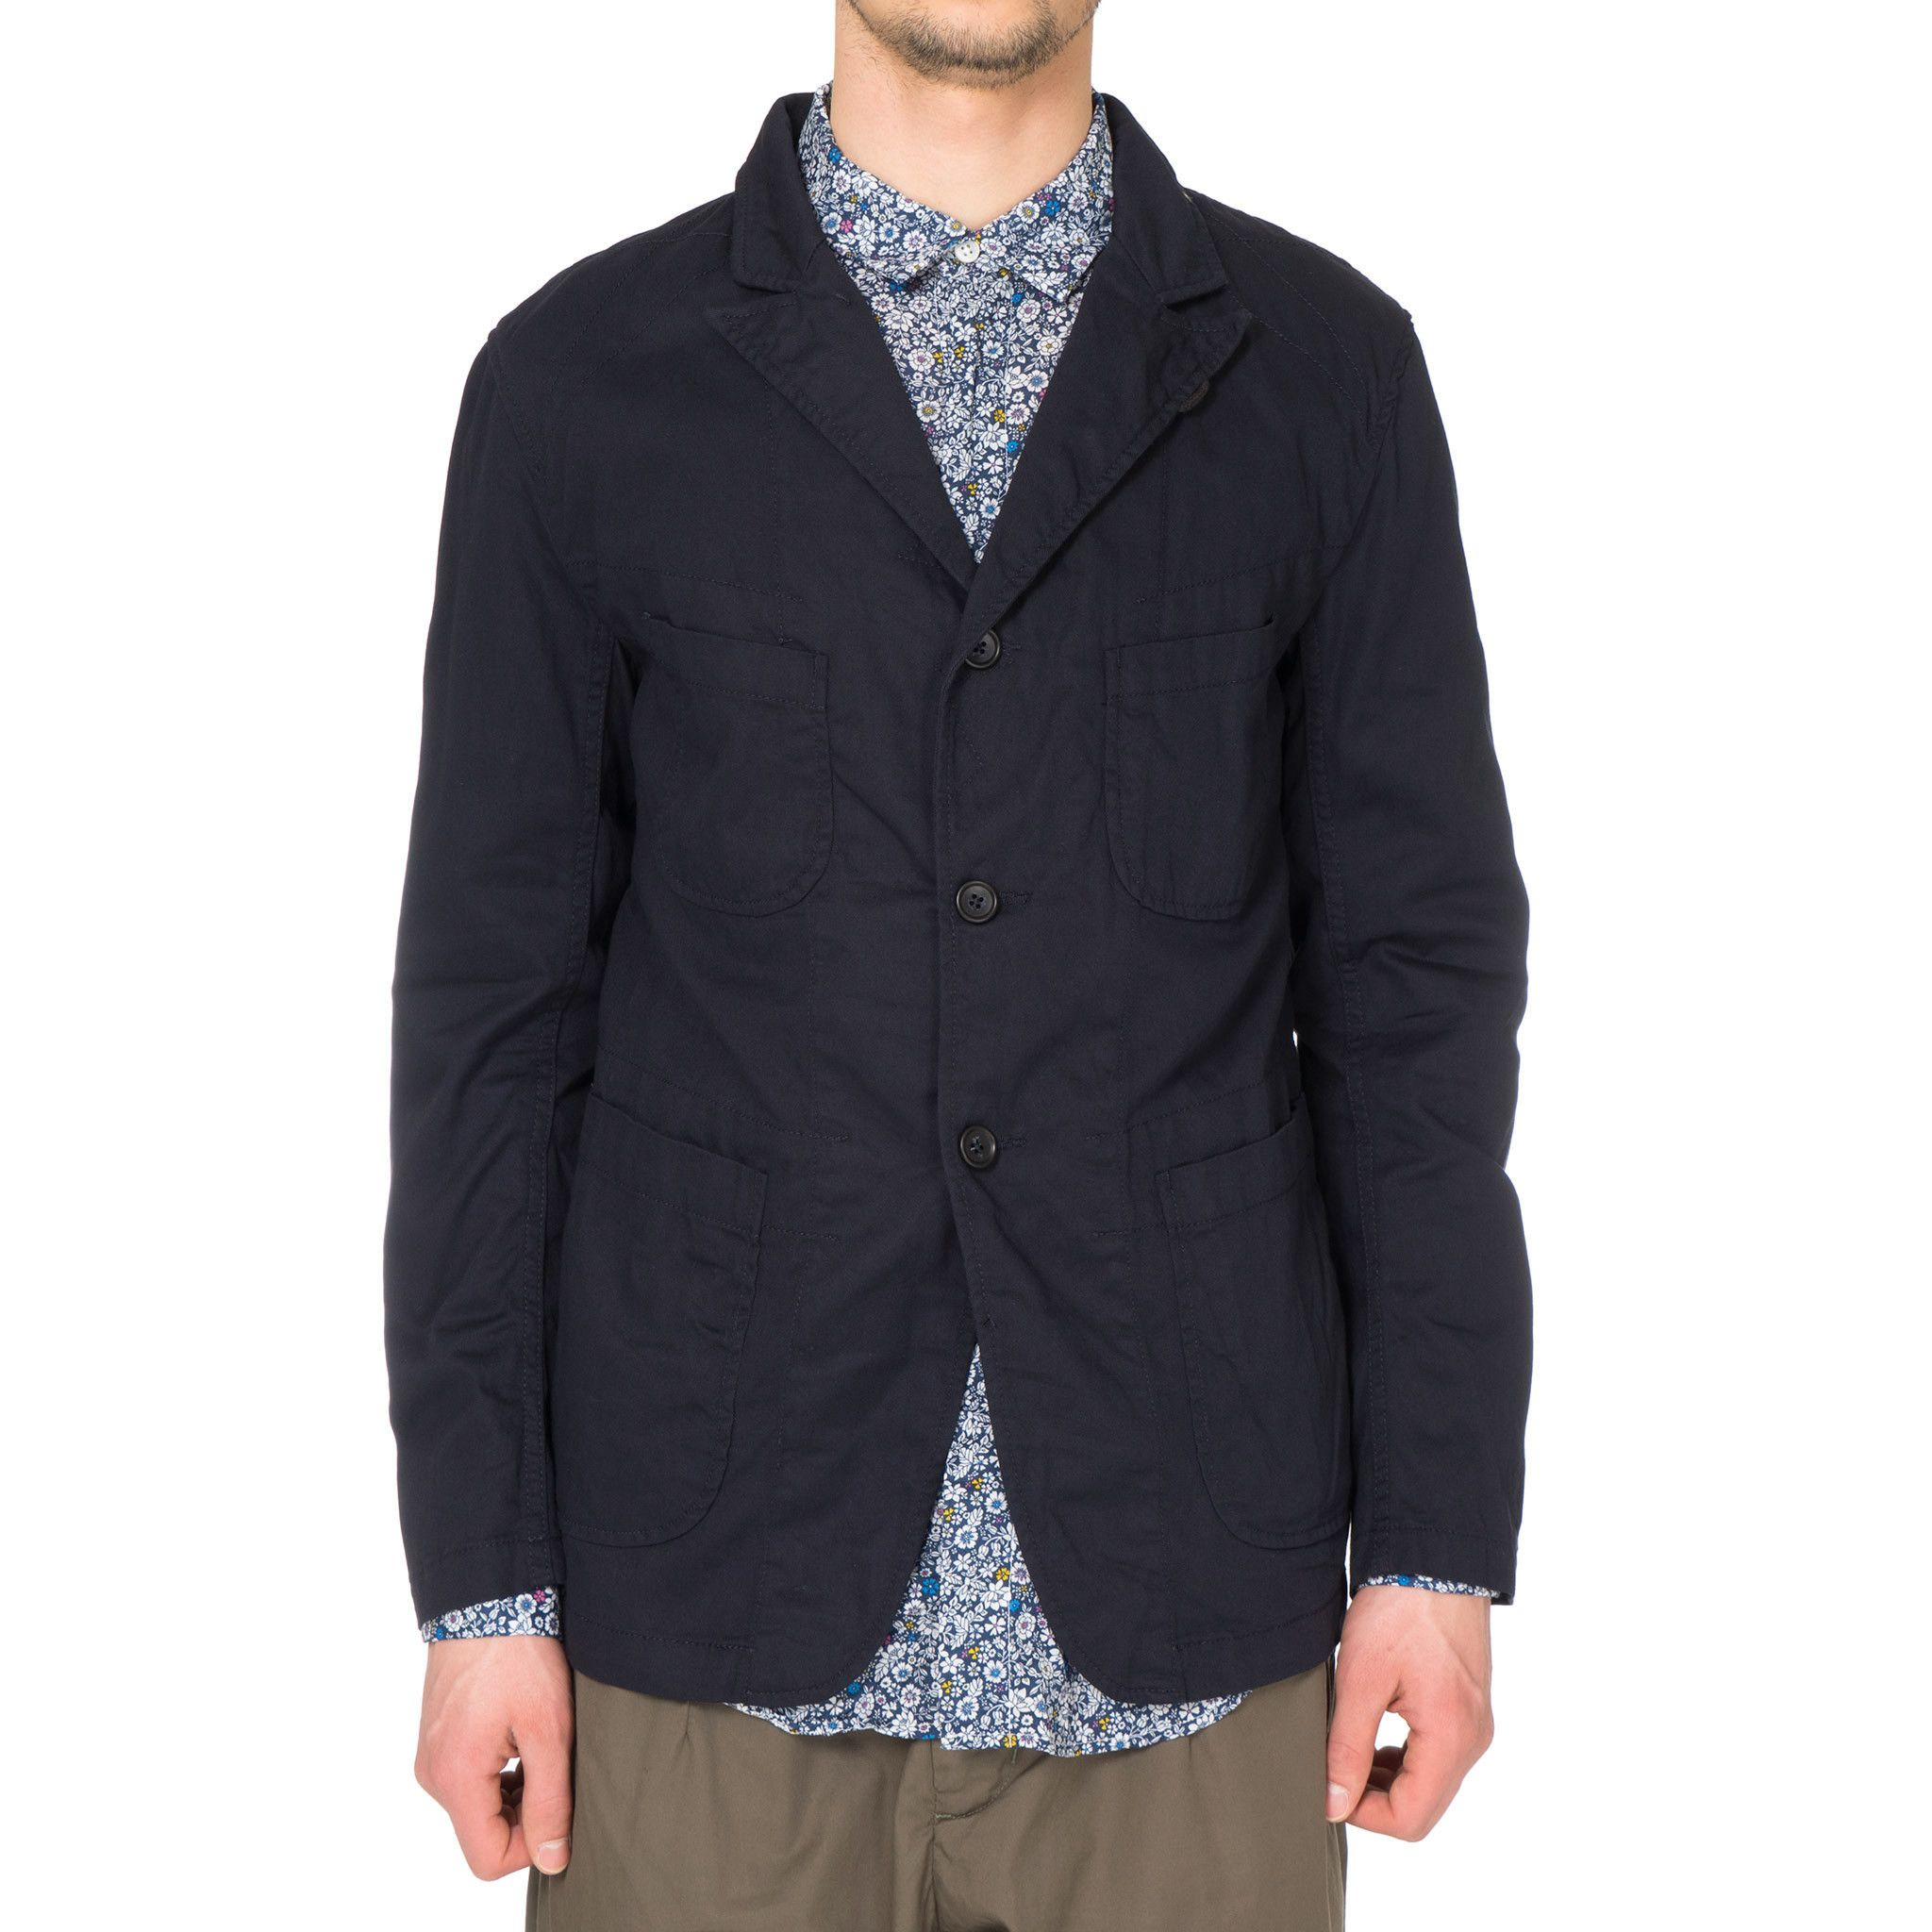 Engineered-Garments-Bedford-Jacket-20s-Cotton-Twill-DK-